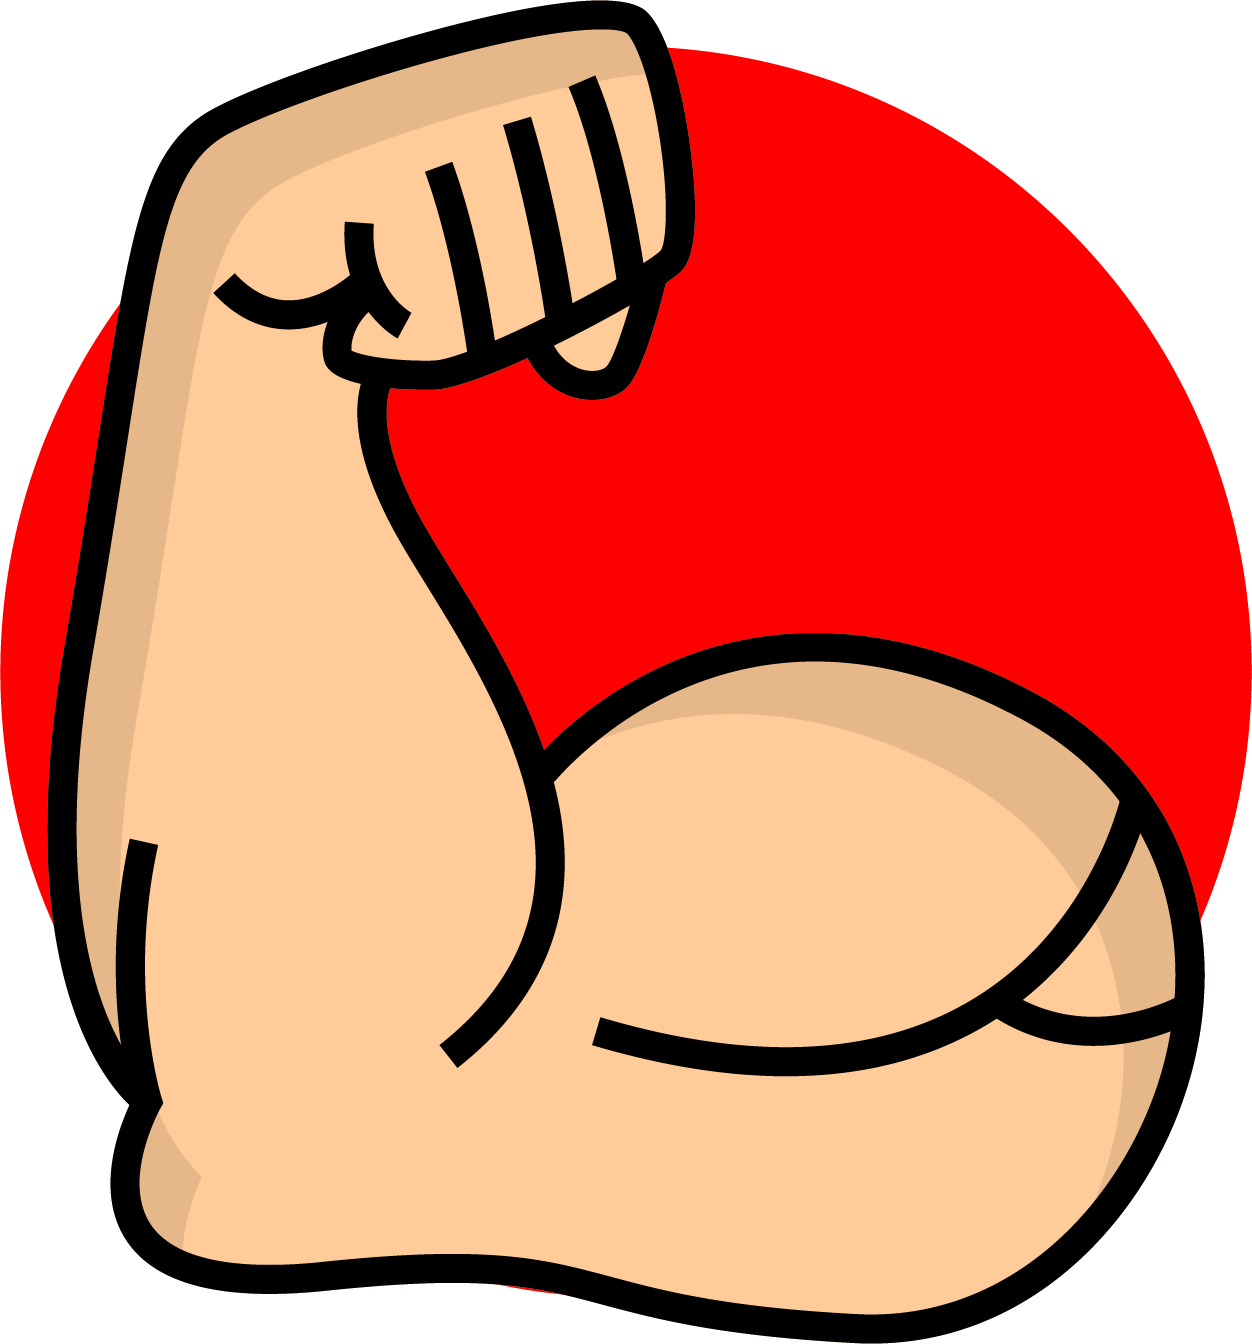 Limb Upper Strong Arm Icon Free Download Image PNG Image